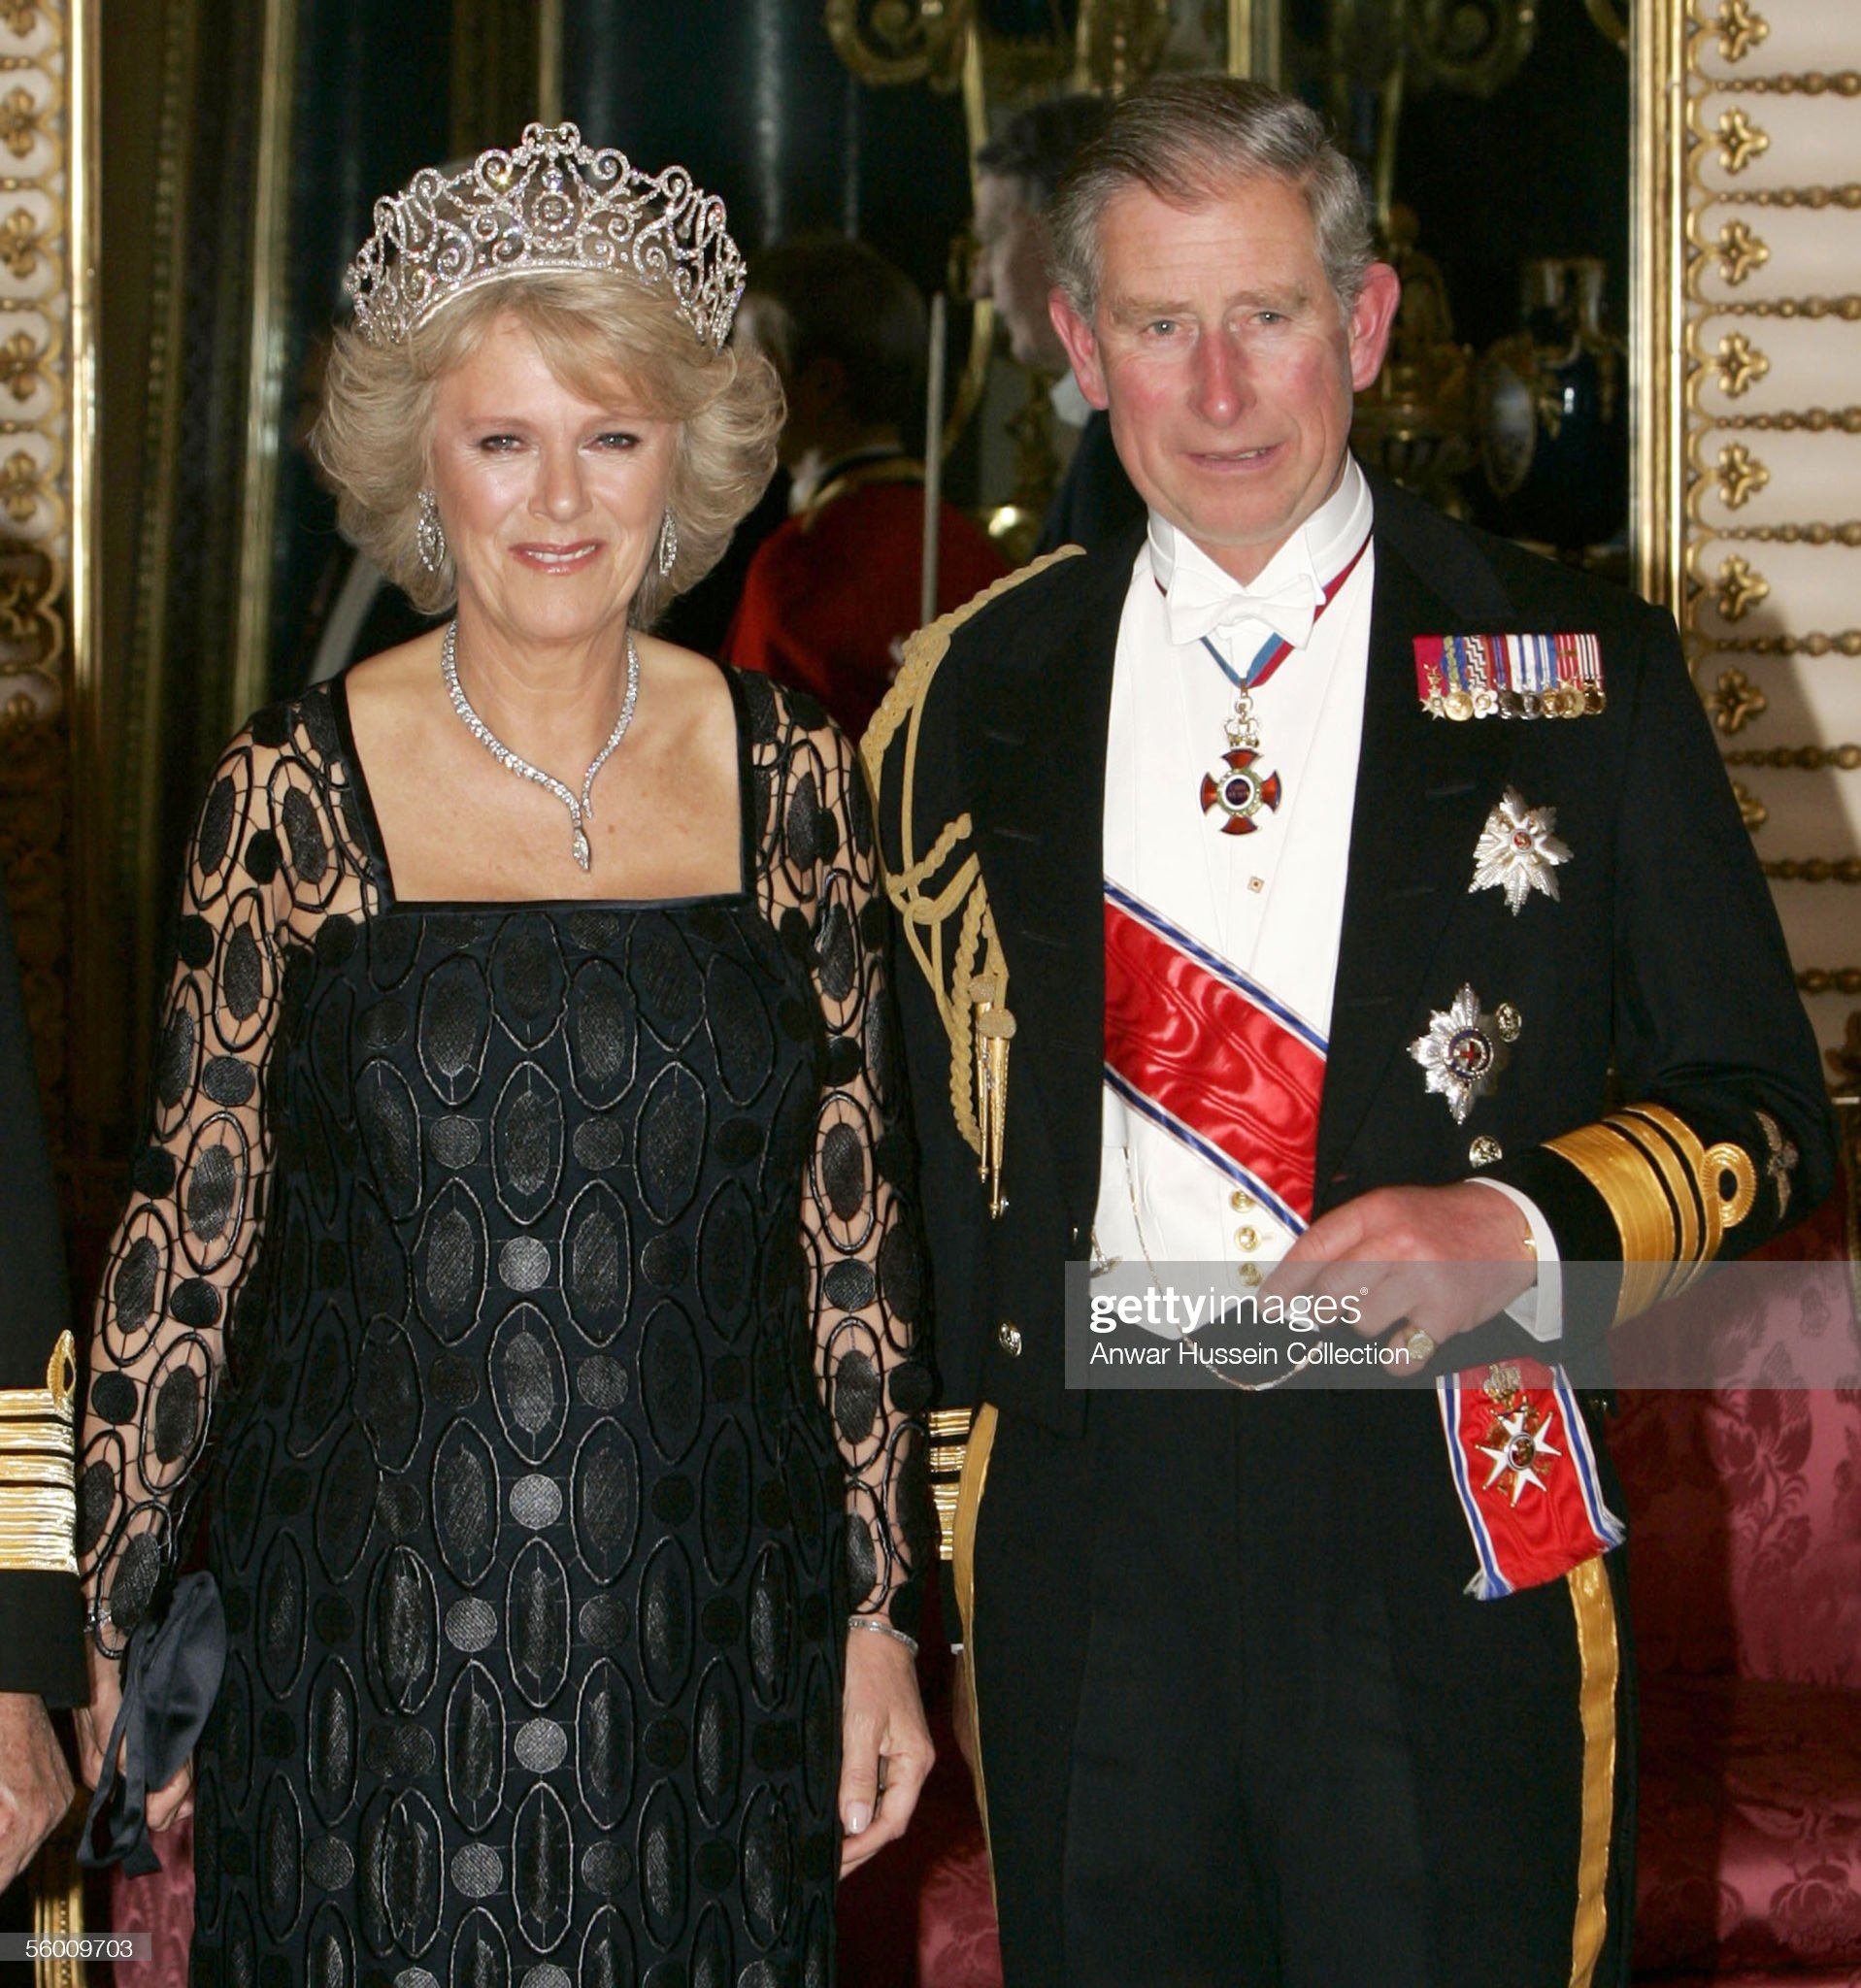 King & Queen Of Norway UK State Visit - Day 1 : News Photo